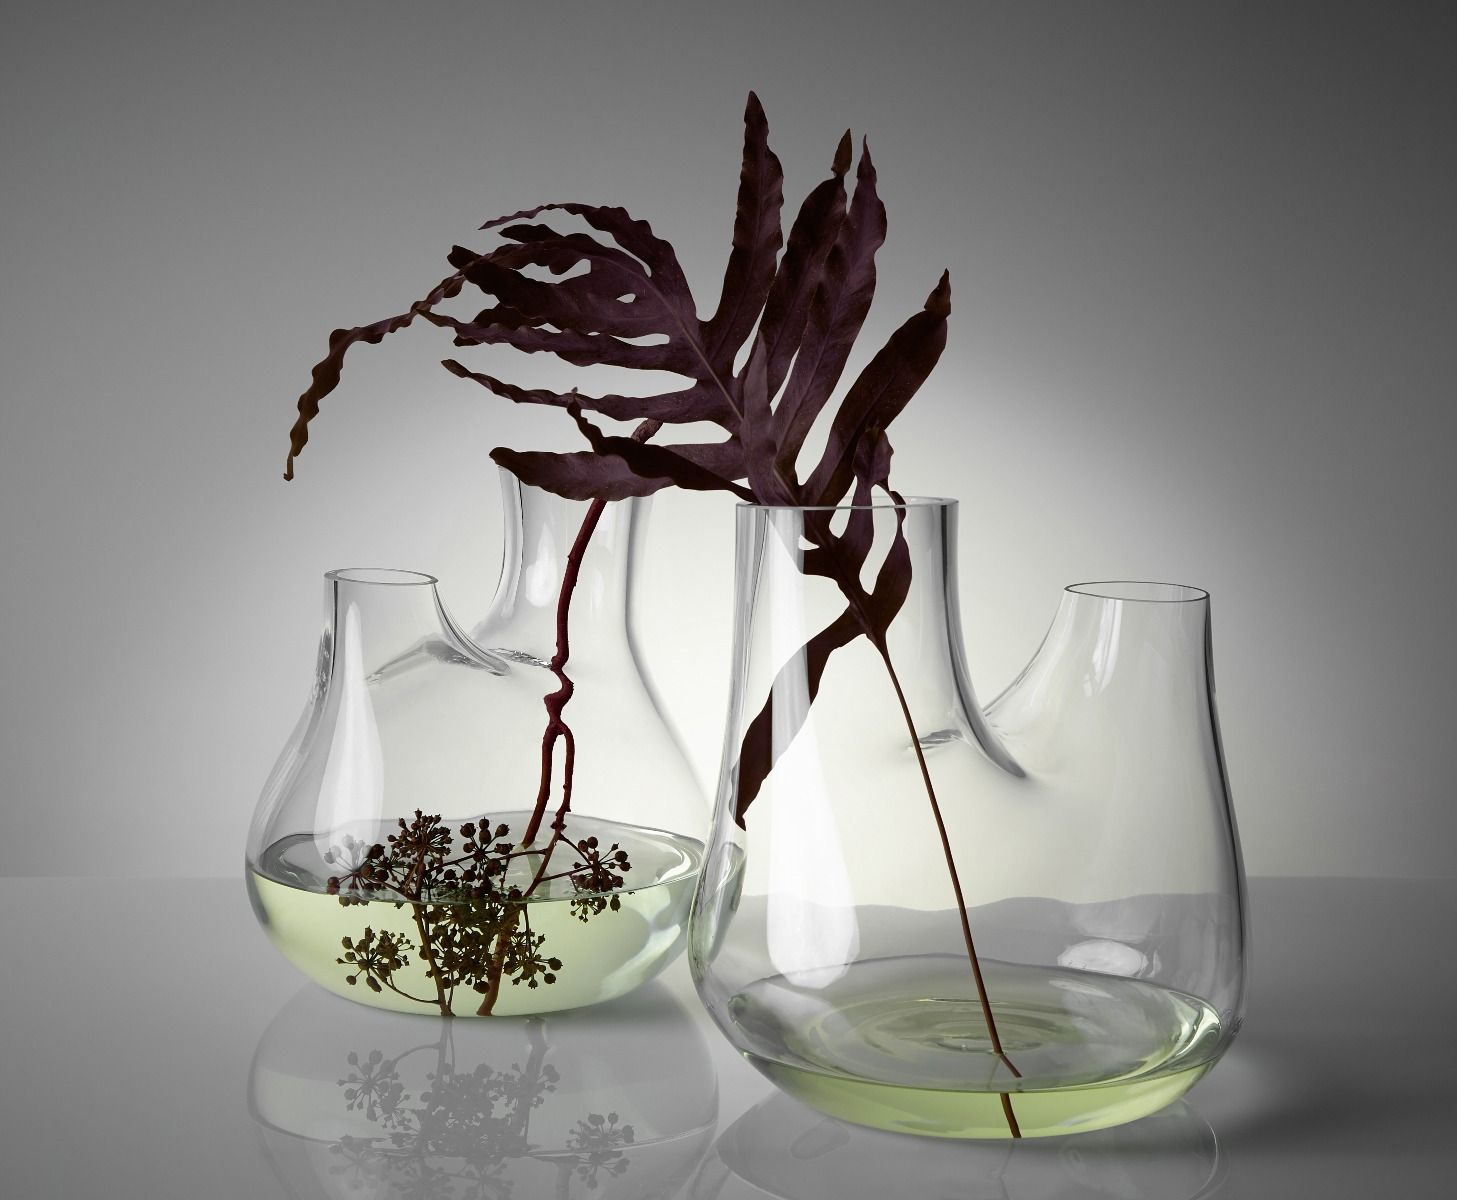 Plant Is All You Need In Your Home Interior Decor! 3